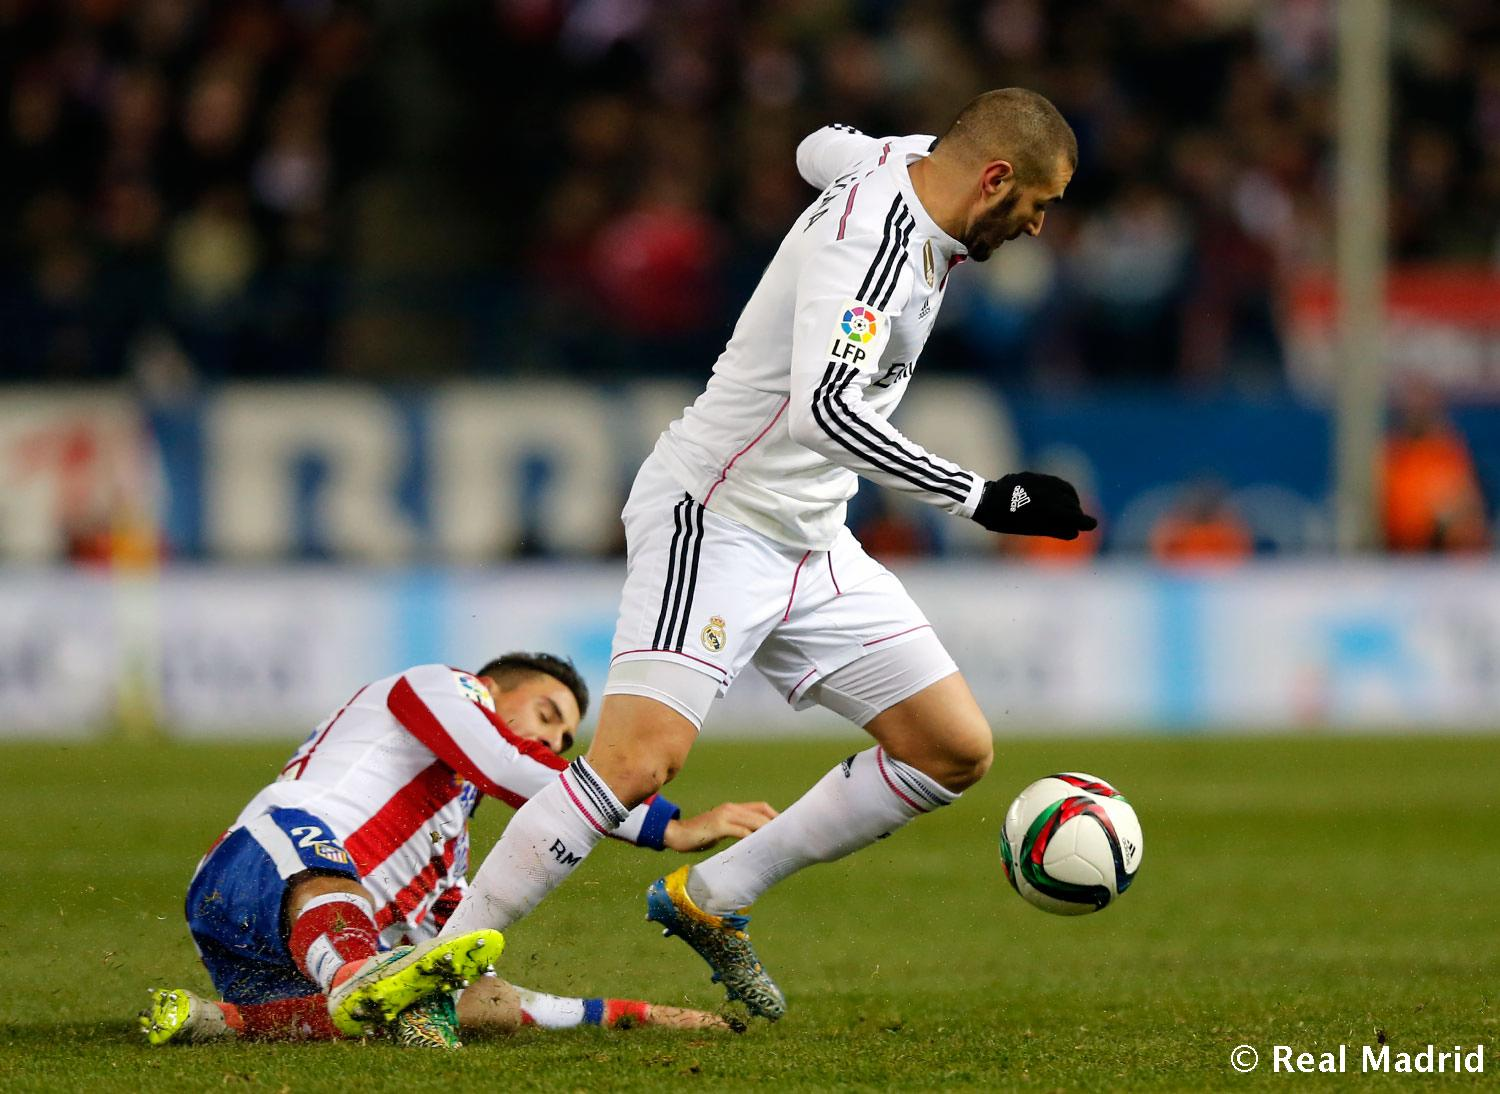 Real Madrid - Atlético de Madrid - Real Madrid - 07-01-2015